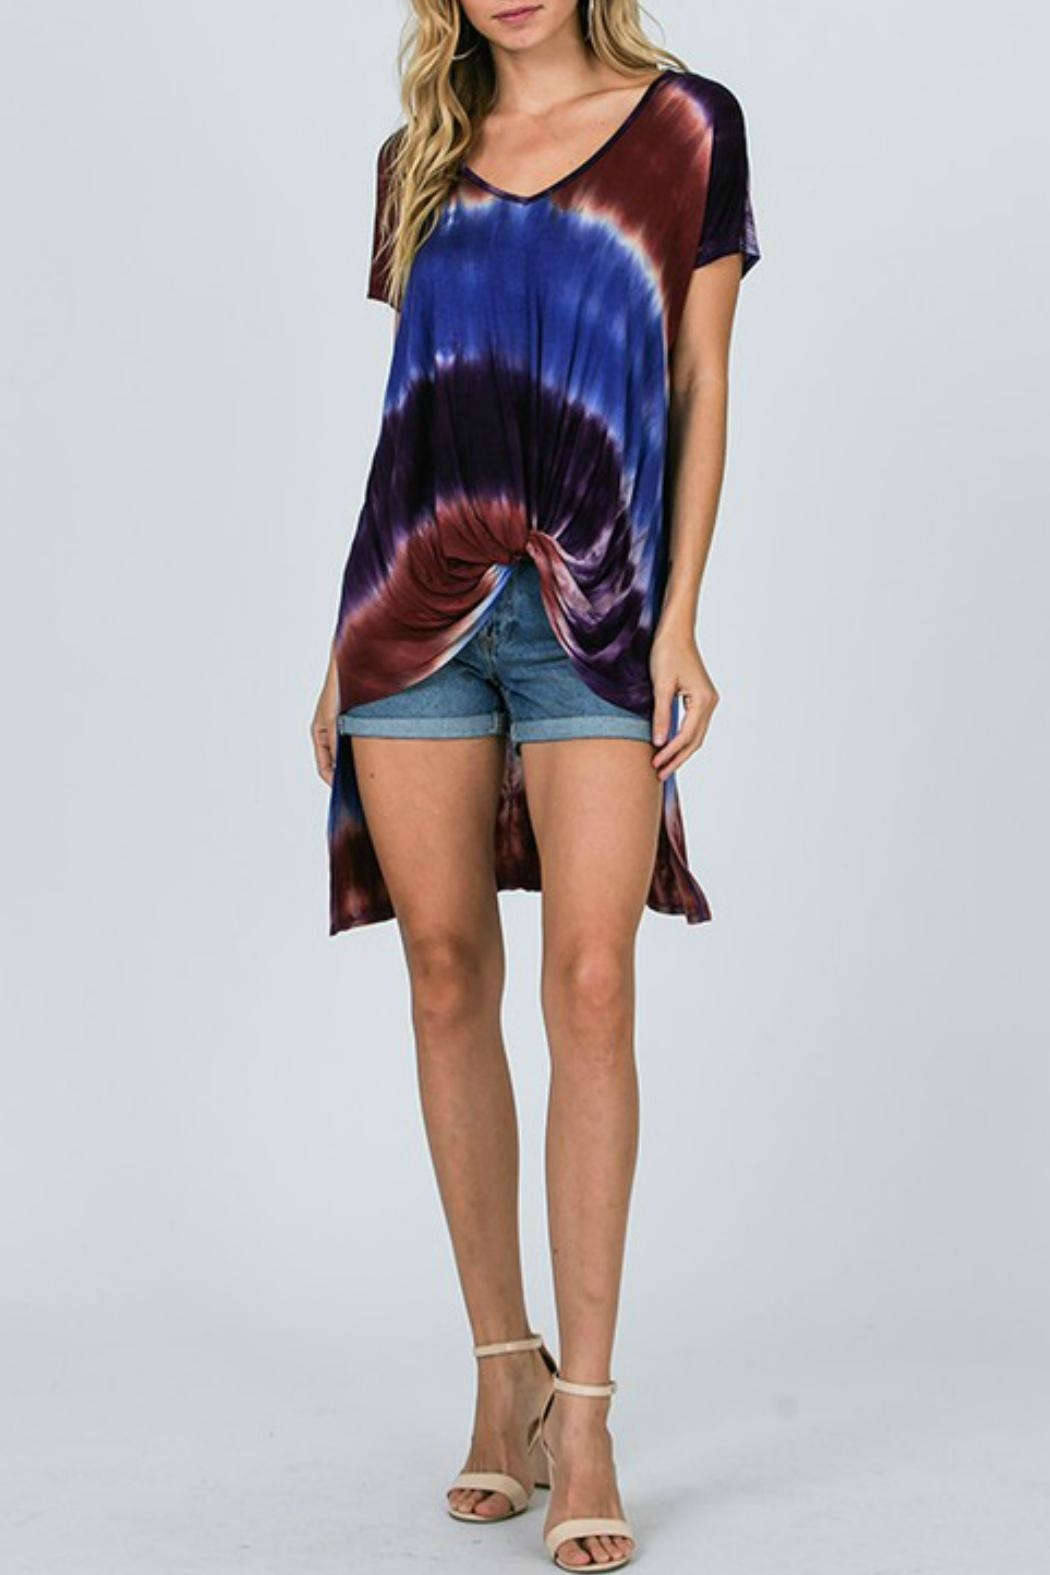 CY Fashion Tie-Dye High-Lo Top - Front Full Image